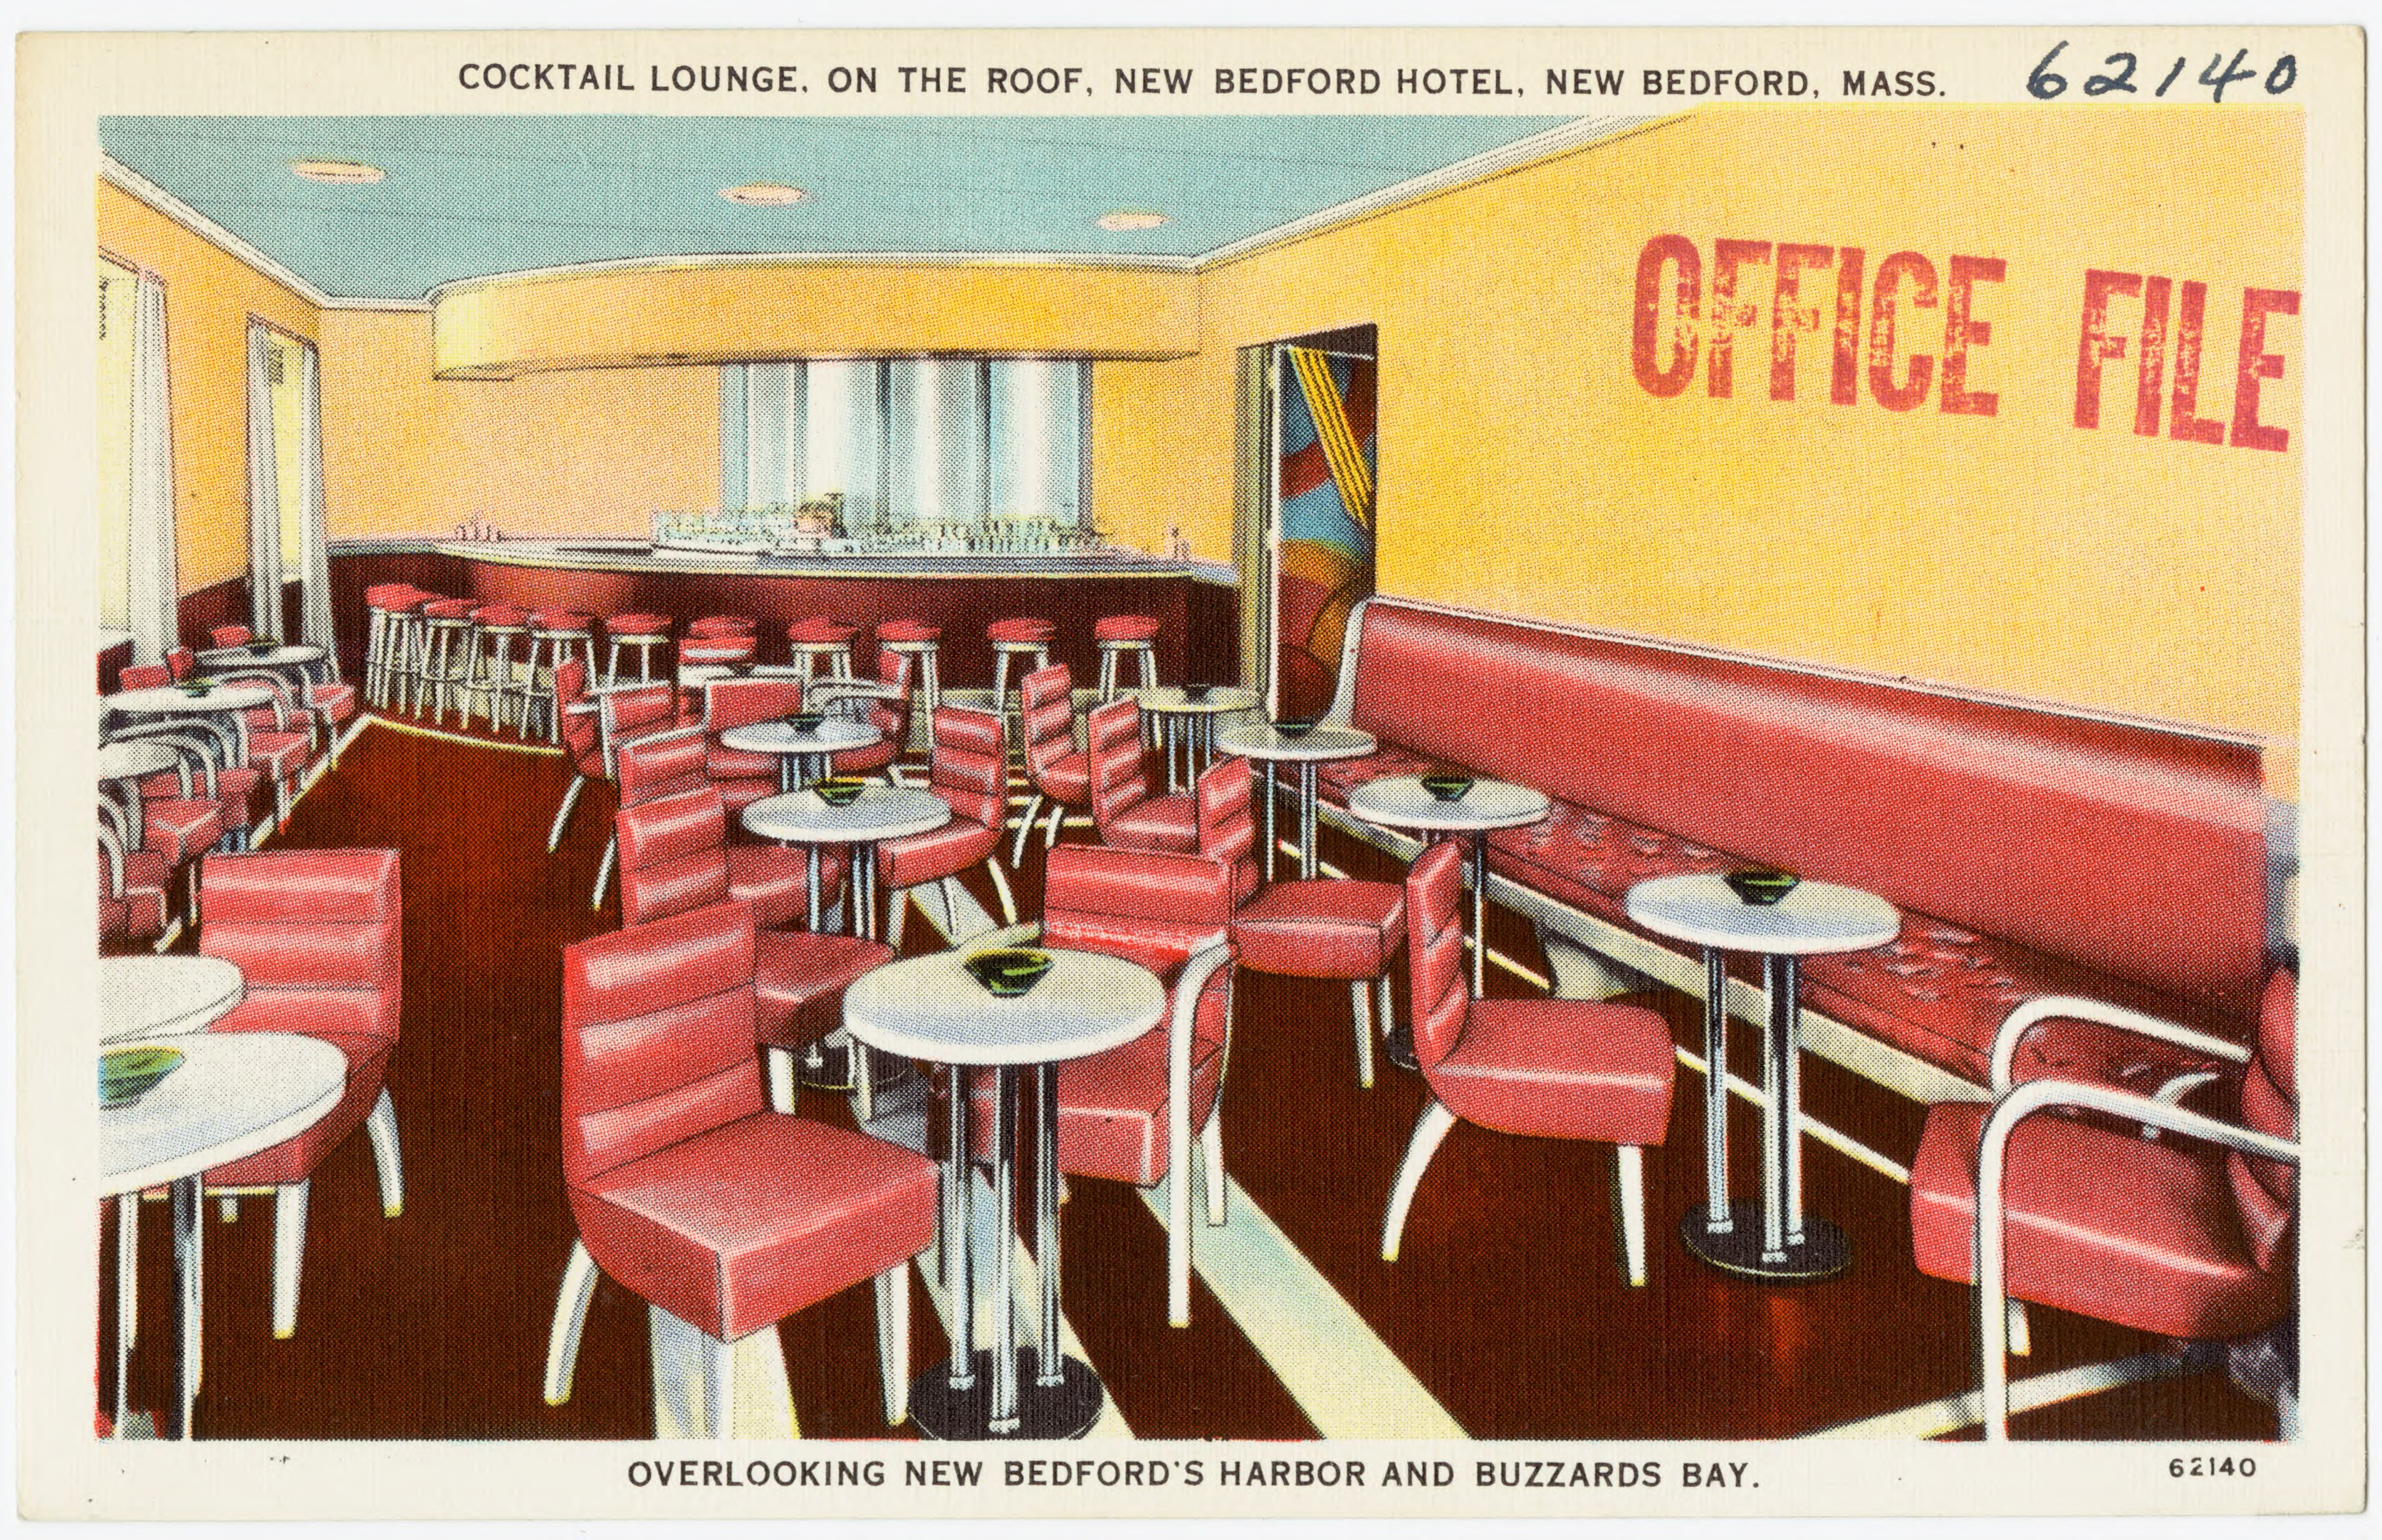 File Tail Lounge On The Roof New Bedford Hotel